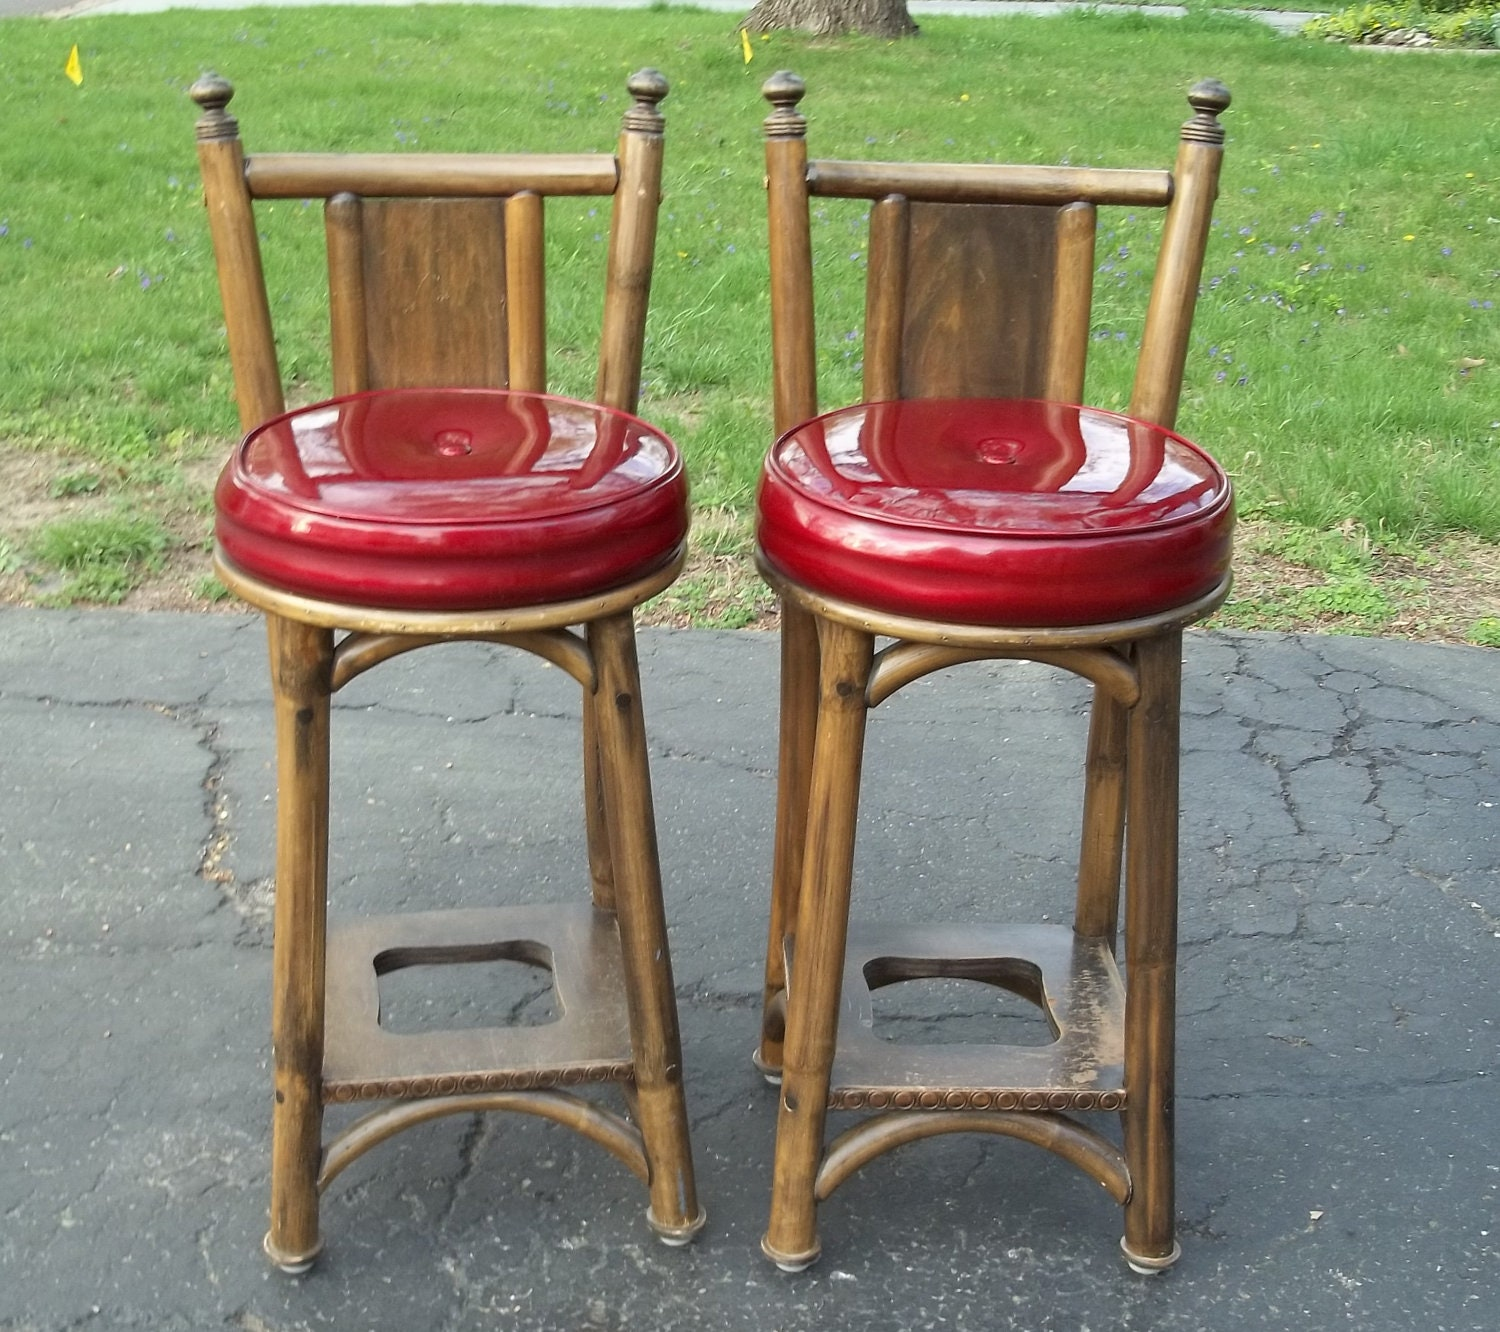 Superb img of Vintage Bar Stools Rattan Wood and Red by Route66StLouis on Etsy with #A12A34 color and 1500x1332 pixels